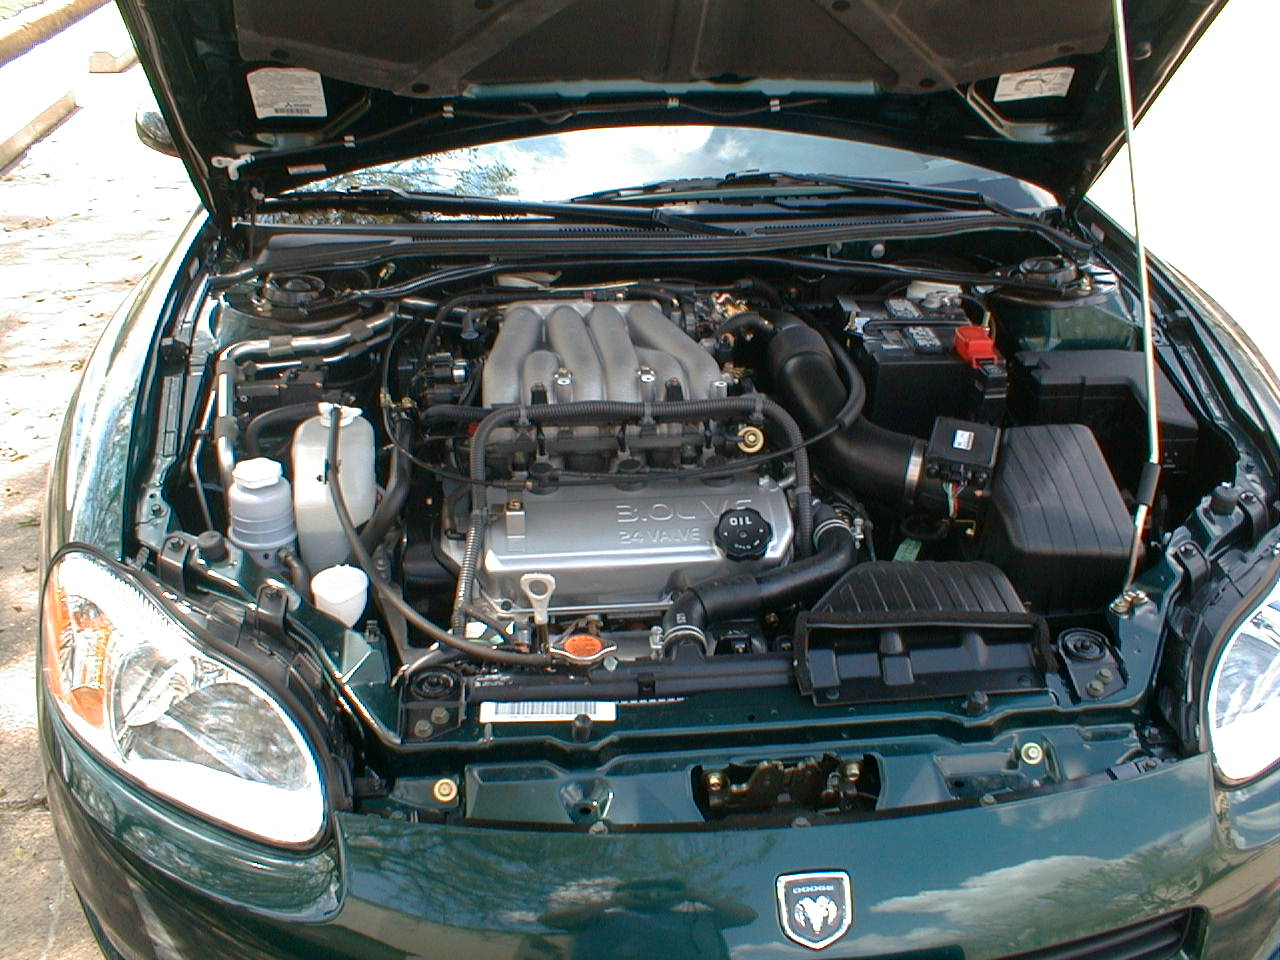 Dodge Stratus V6 Engine Diagram Simple Guide About Wiring 1999 3 0 Free Download U2022 Playapk Co Rh